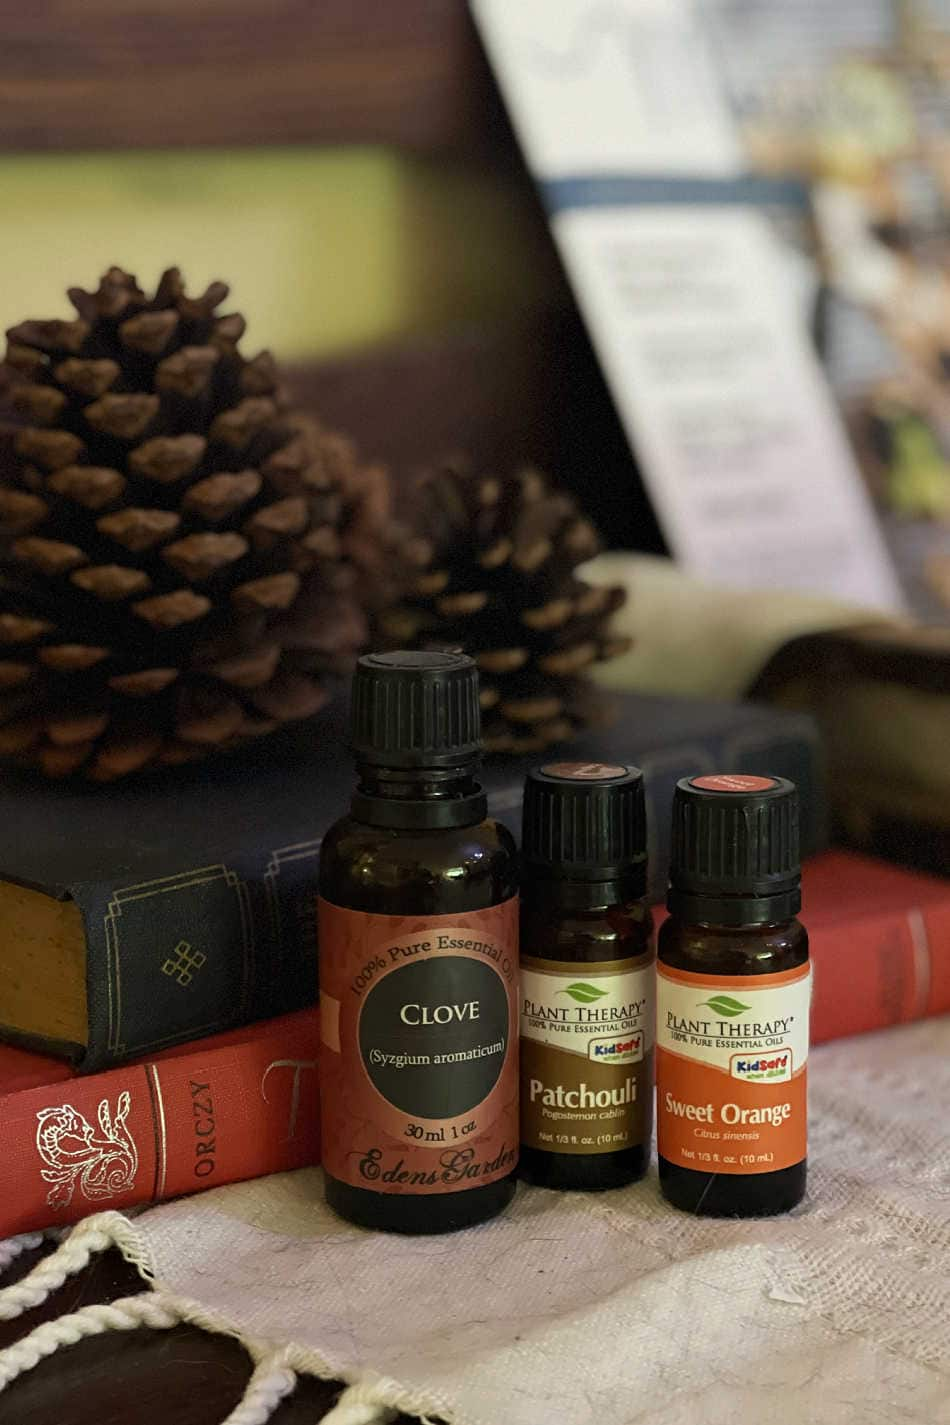 4 Autumn Essential Oil Blends to Give You All the Fall Feelings | Growing Up Herbal | Looking for those fall feelings? If so, here are 4 autumn essential oil blends to add to your diffuser to put you in the fall mood!